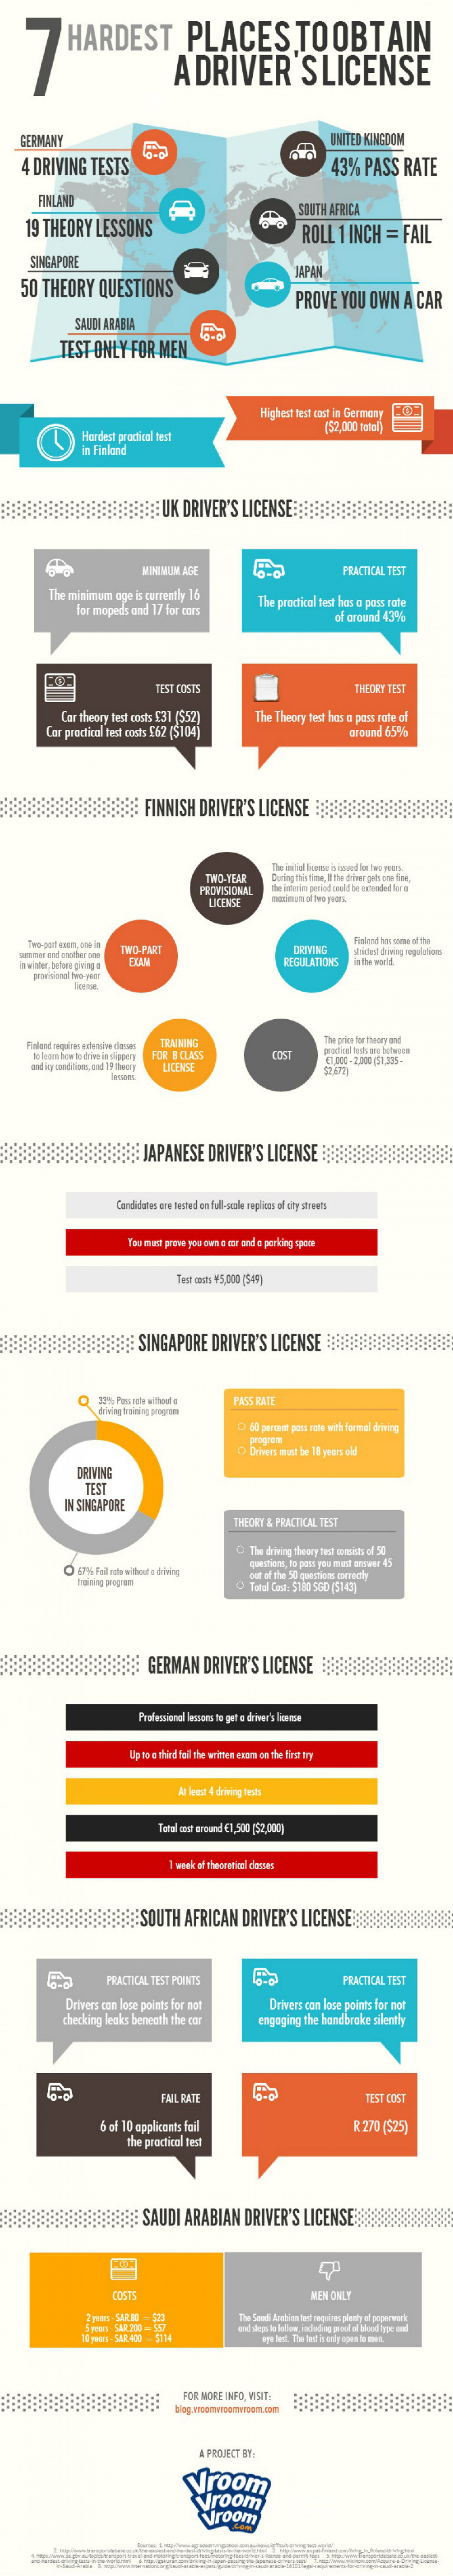 7 Hardest Places To Obtain A Driver's License Infographic